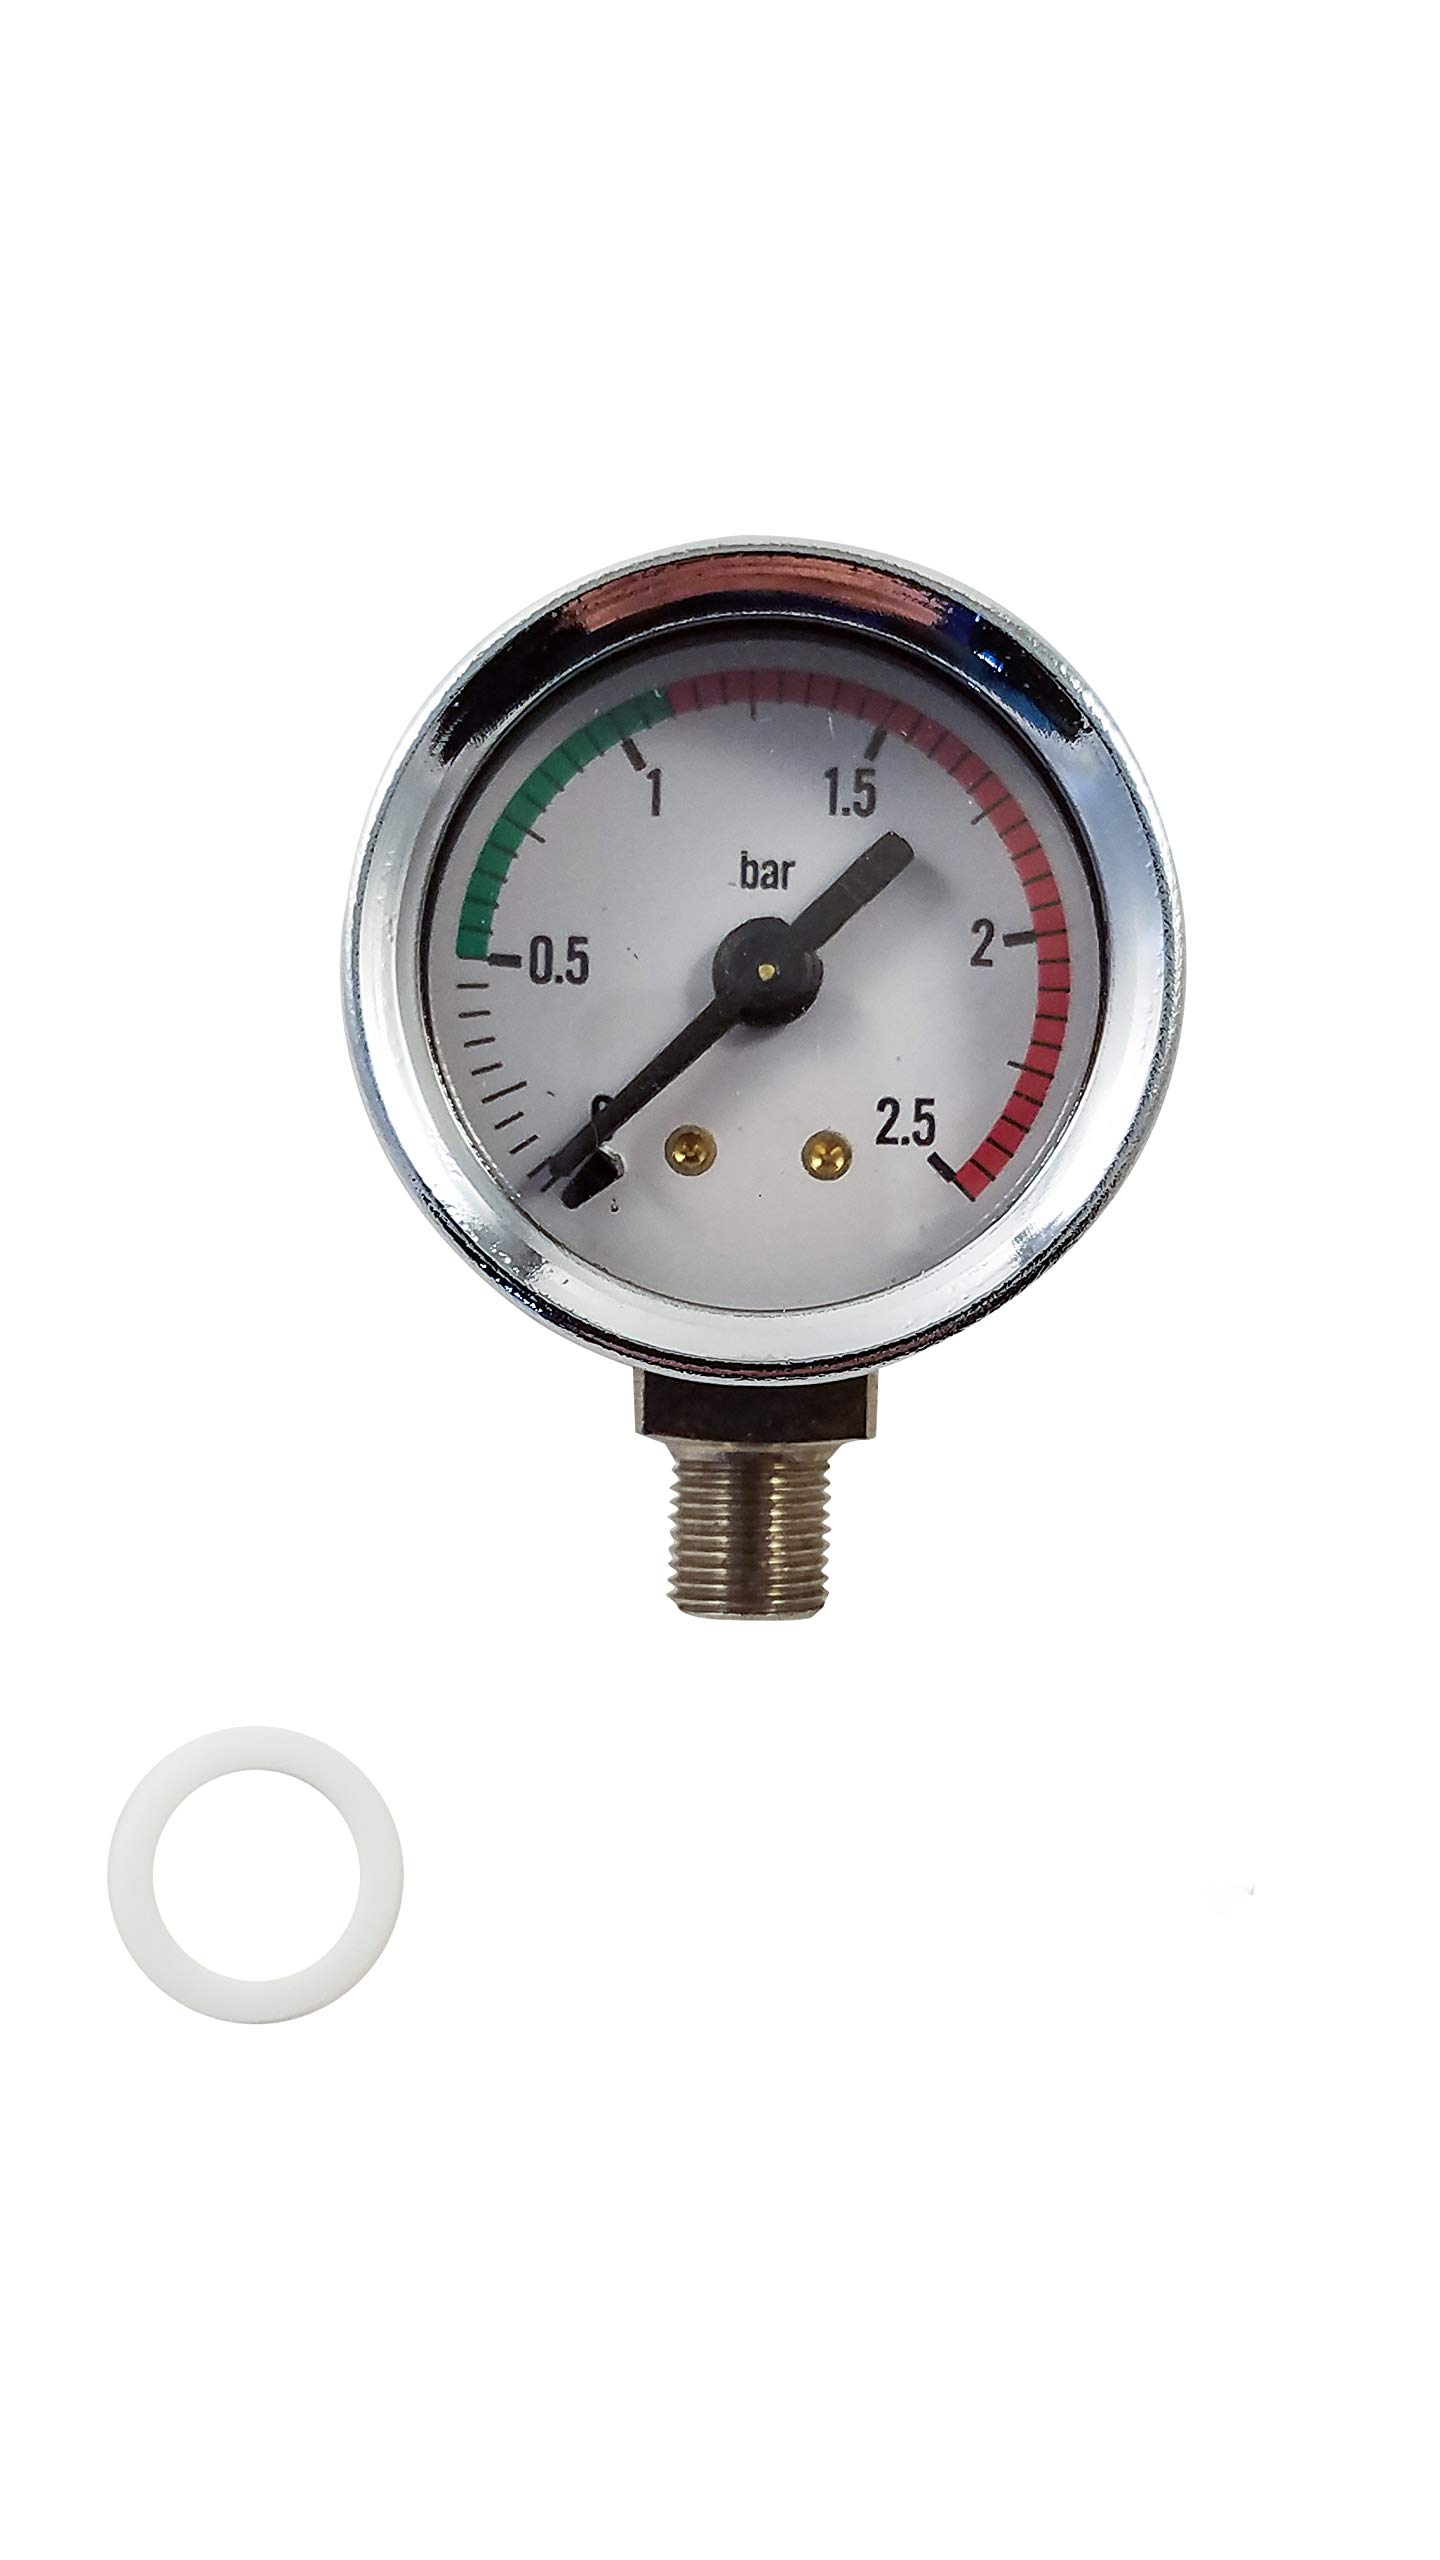 La Pavoni Espresso Machine Boiler Pressure Gauge - Chrome - For Lever Pre and Post Millenium Europiccola, Professional and Stradivari. by La Pavoni